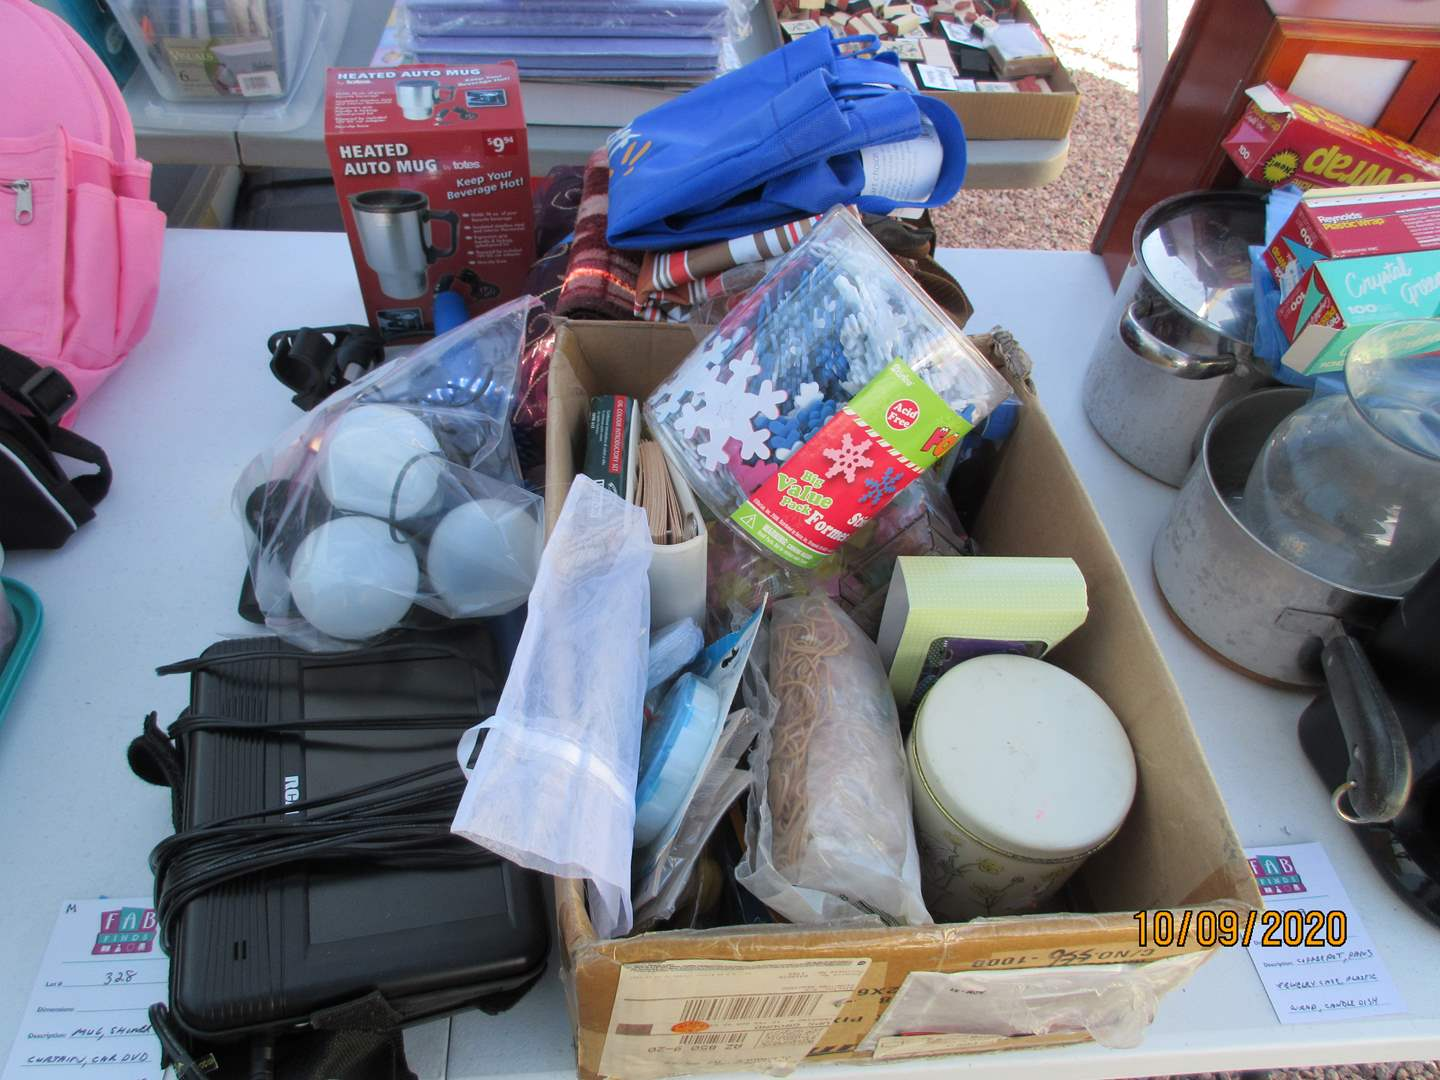 Lot # 328 - Auto Mug, Car DVD, Shower Curtain + Miscellaneous (main image)